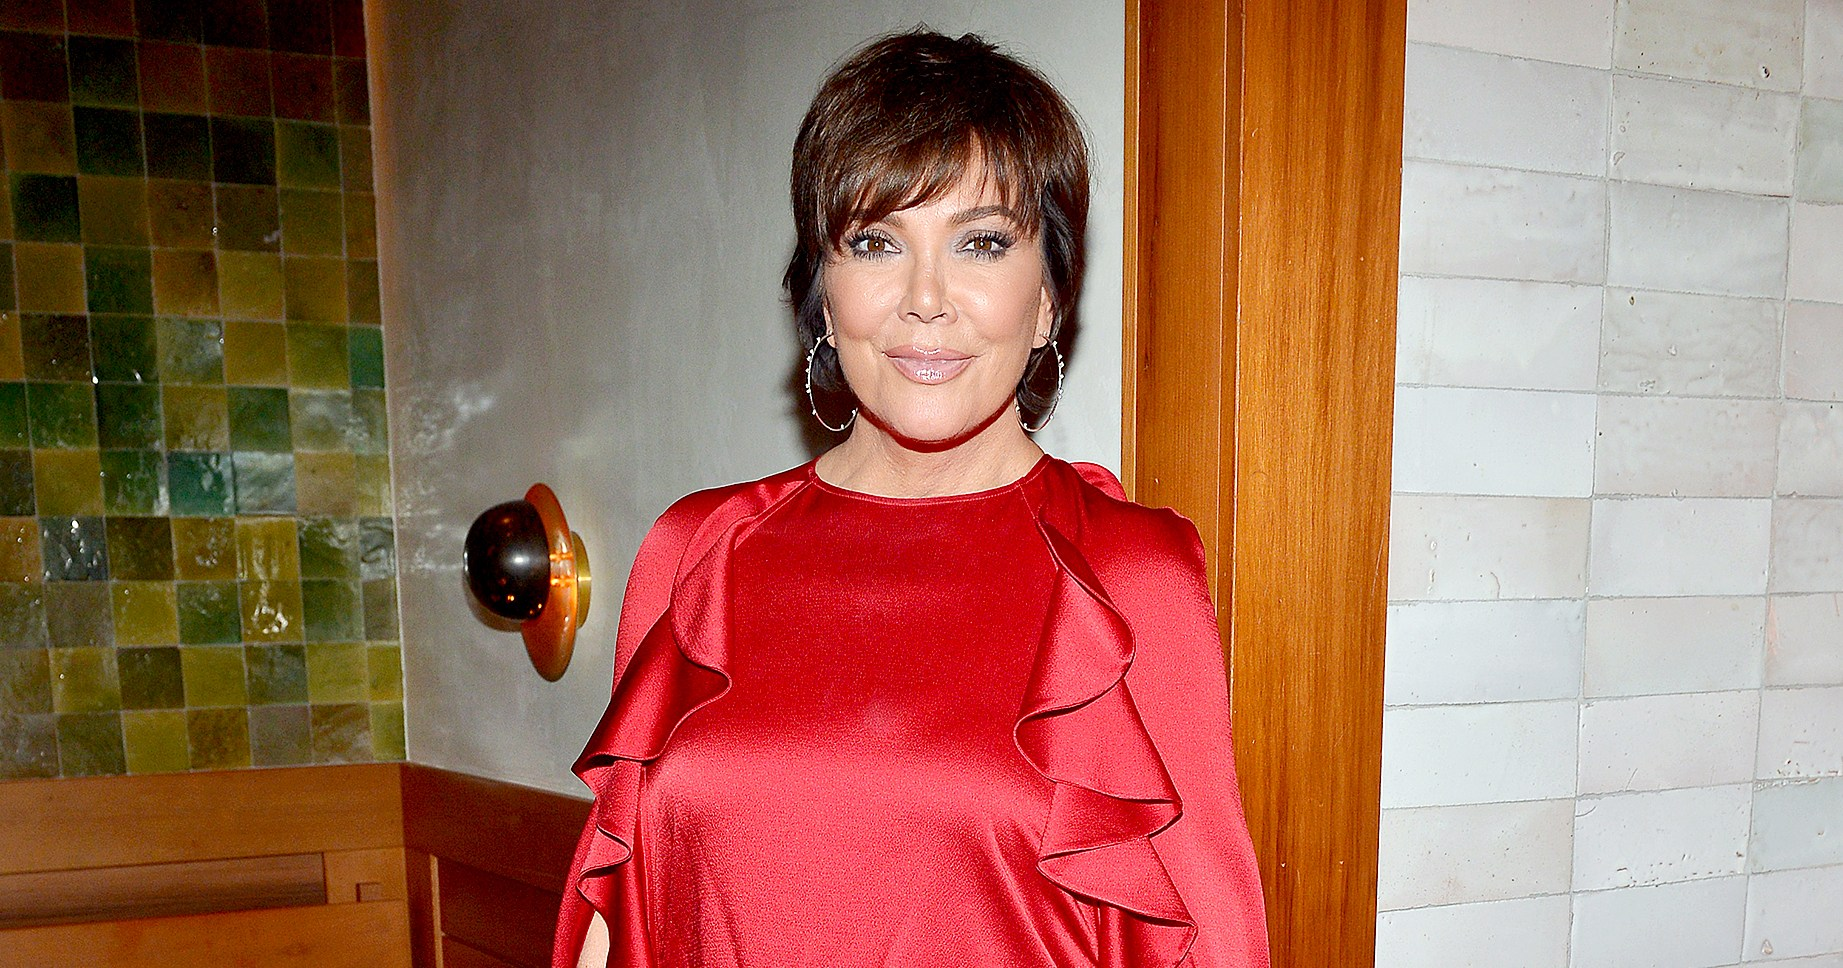 Kris Jenner Isn't Fazed Breaking the Kardashian Christmas Card Tradition: 'We Take So Many Photos Together'